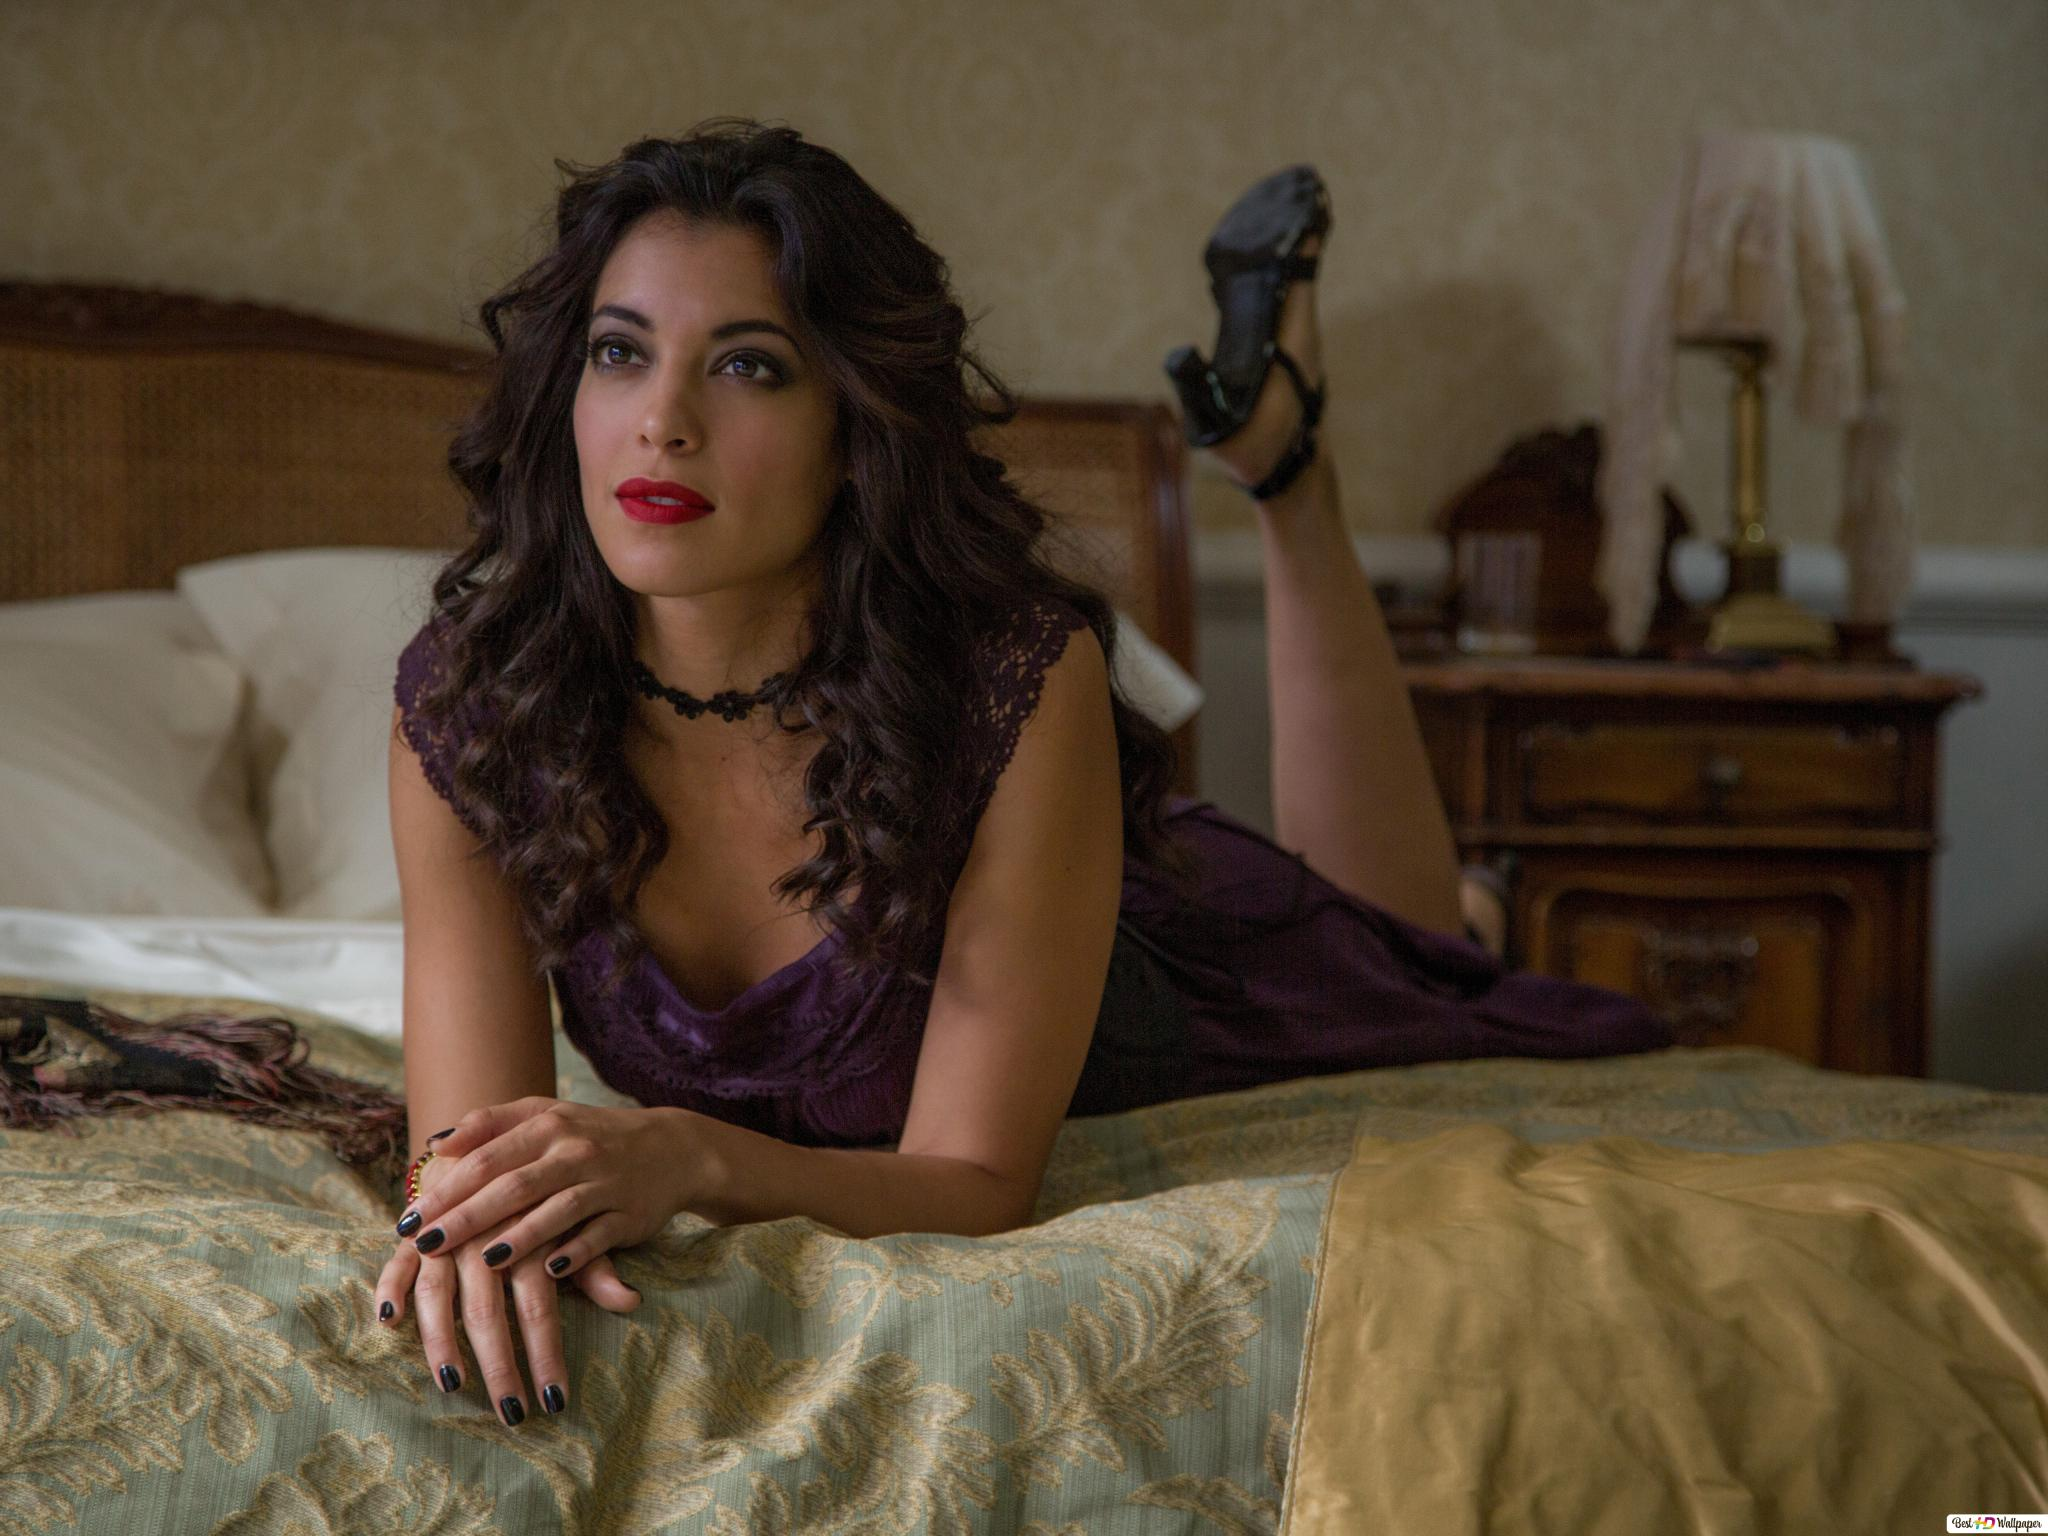 Spectre Pretty Lady Lying On The Bed Hd Wallpaper Download